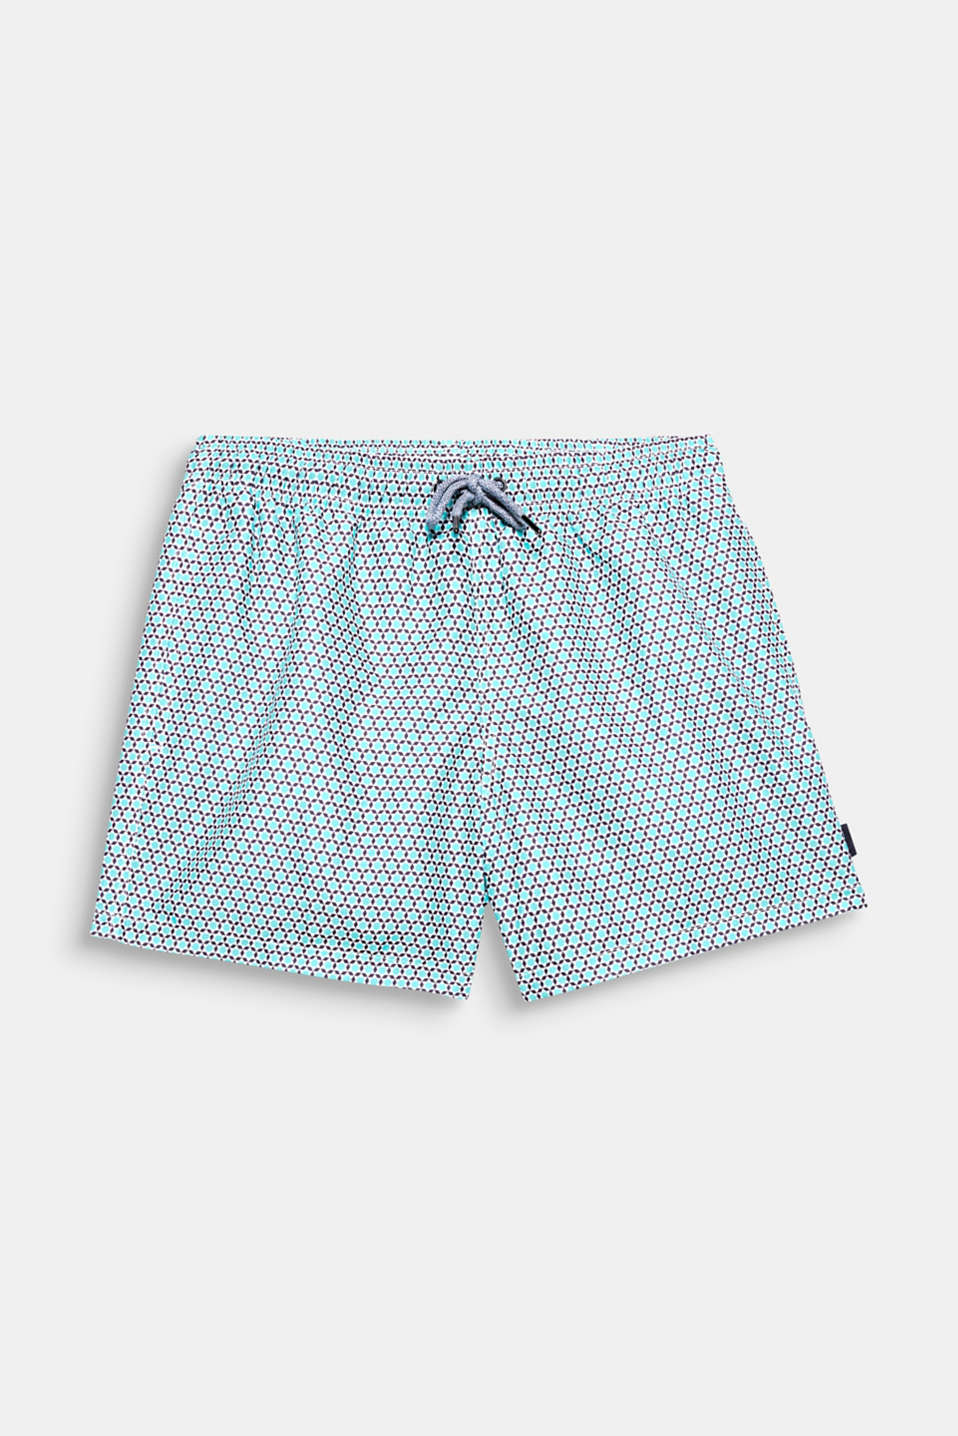 A minimalist print for maximum fun in the water! These swim trunks make playing in the water that much more fun.